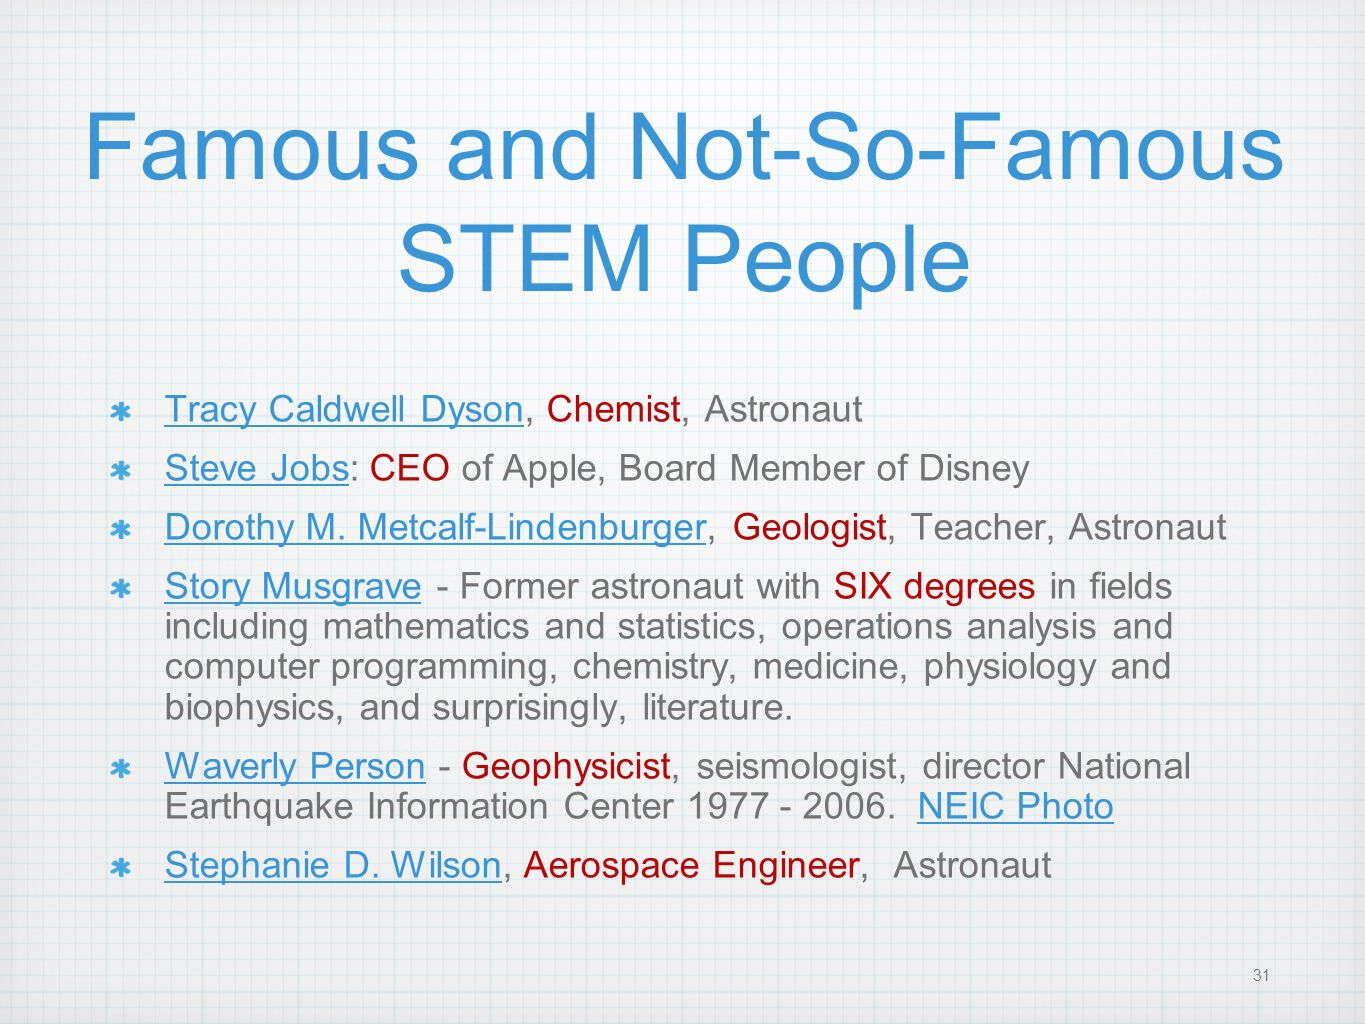 Famous and Not-So-Famous STEM People